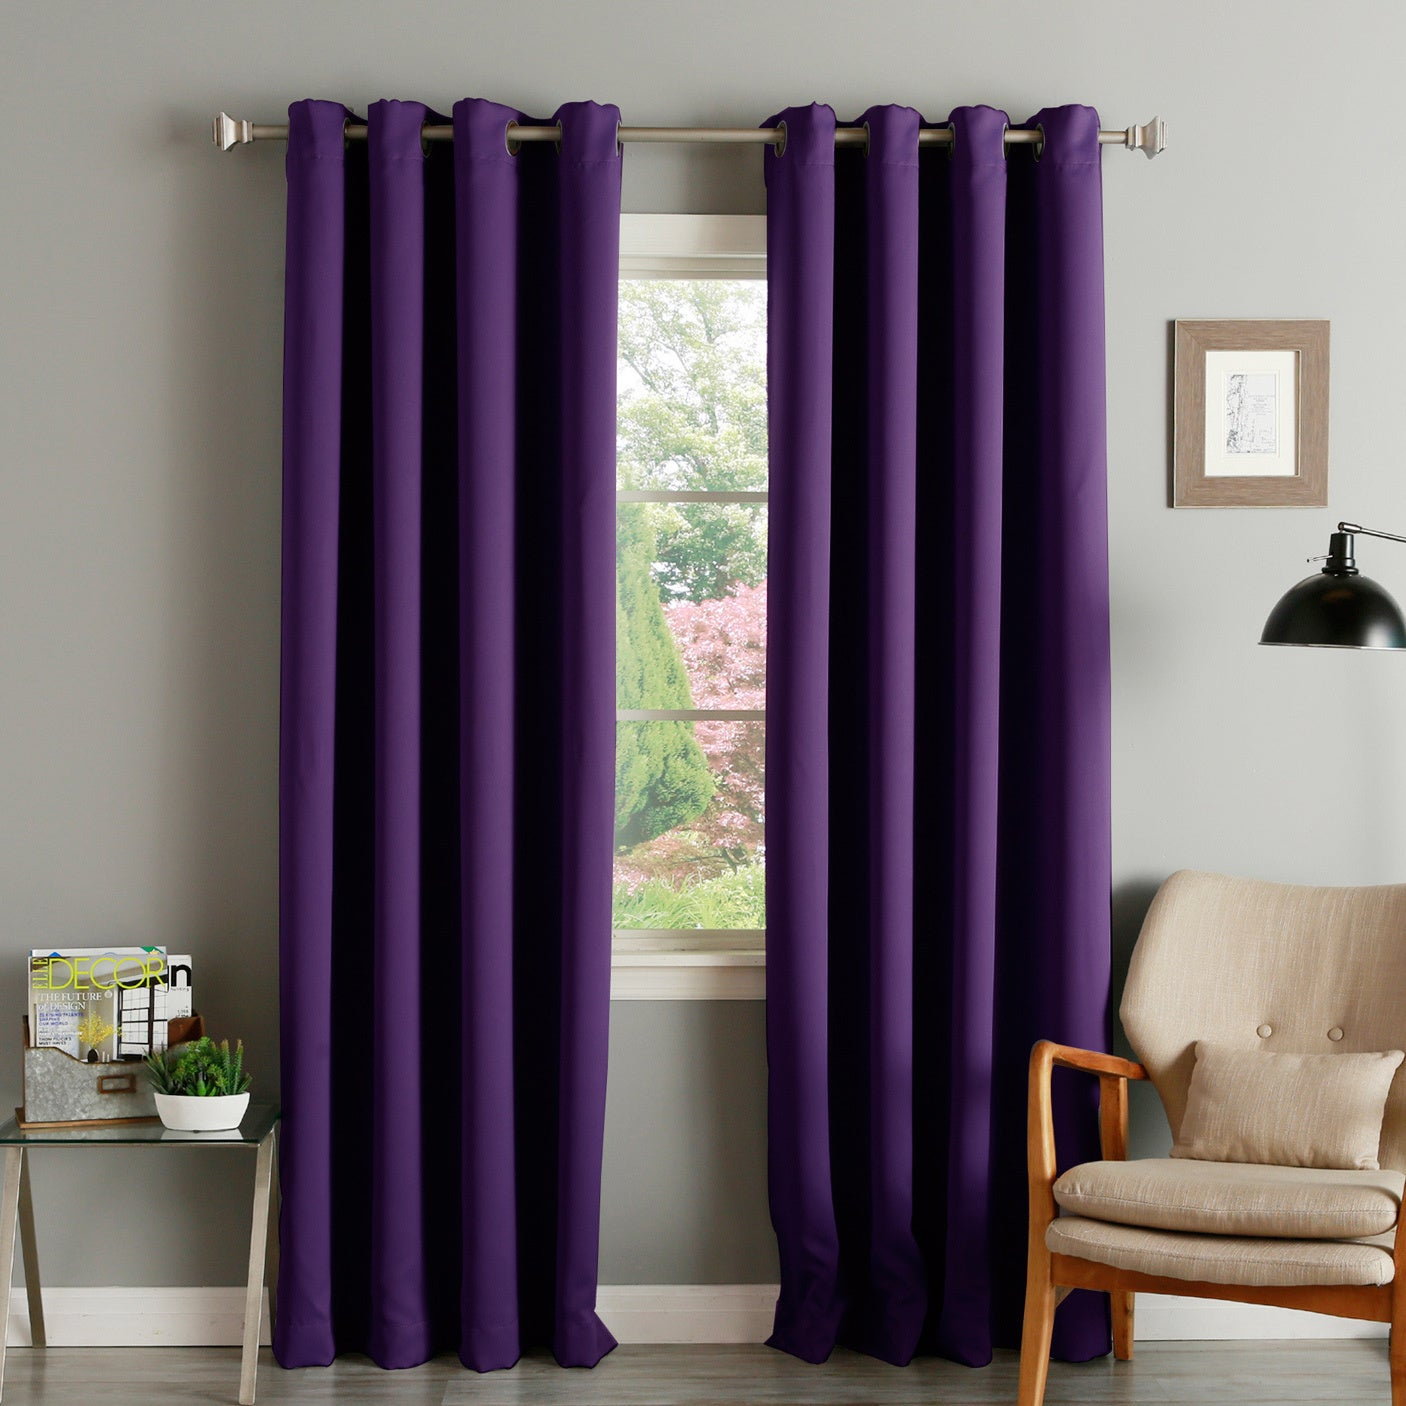 Blackout Curtain Panels With Grommets Curtain